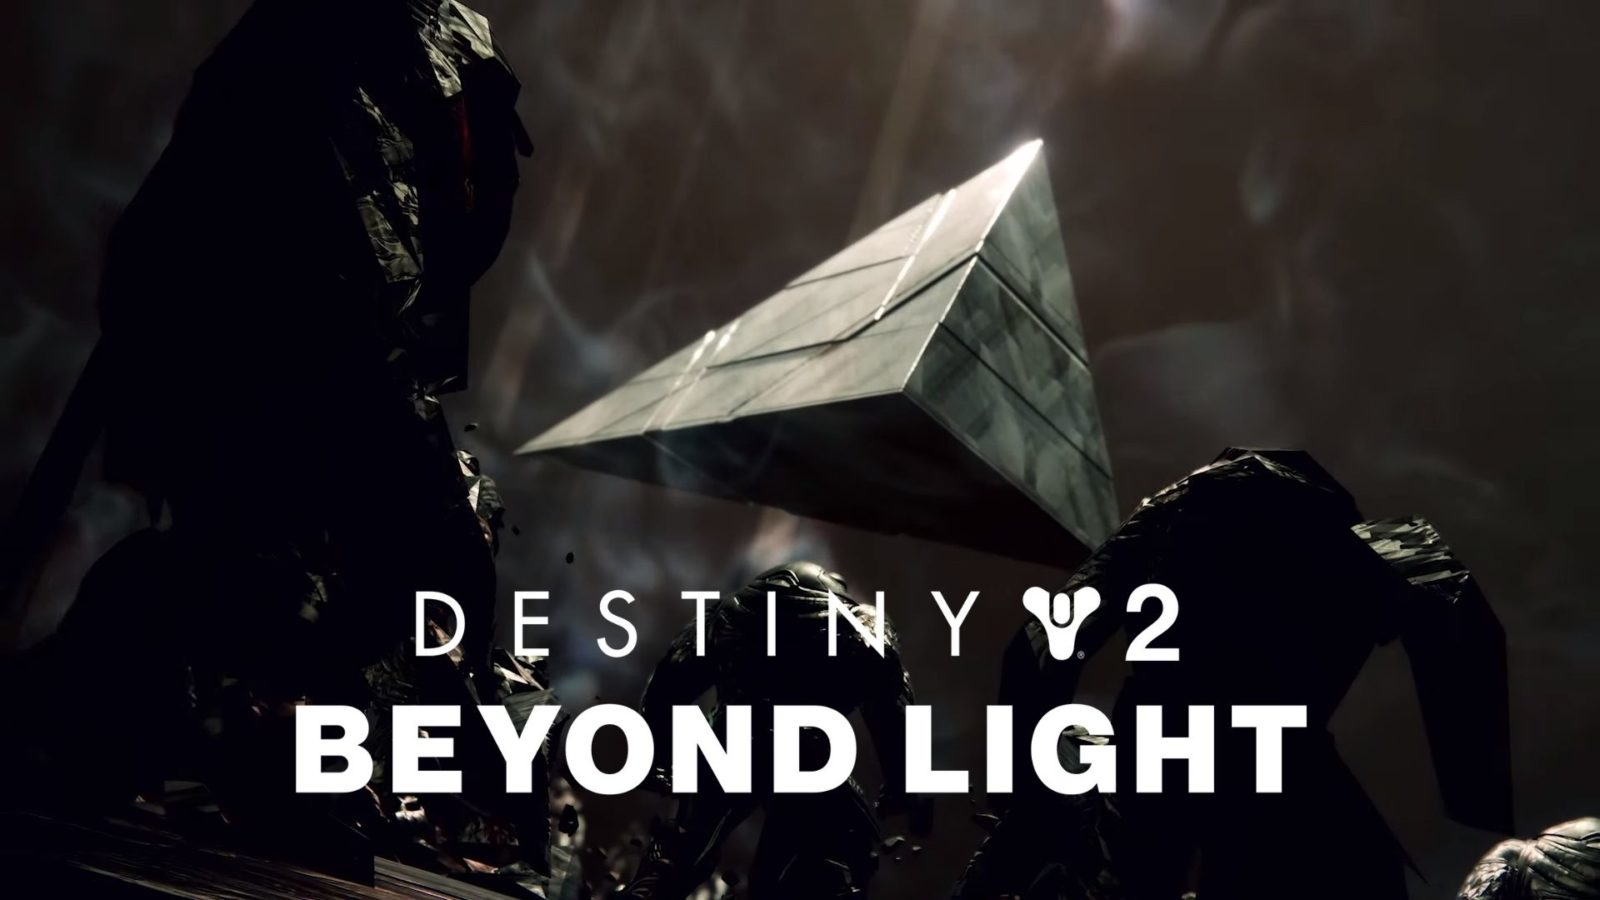 entropic shard in destiny 2 beyond light featured image